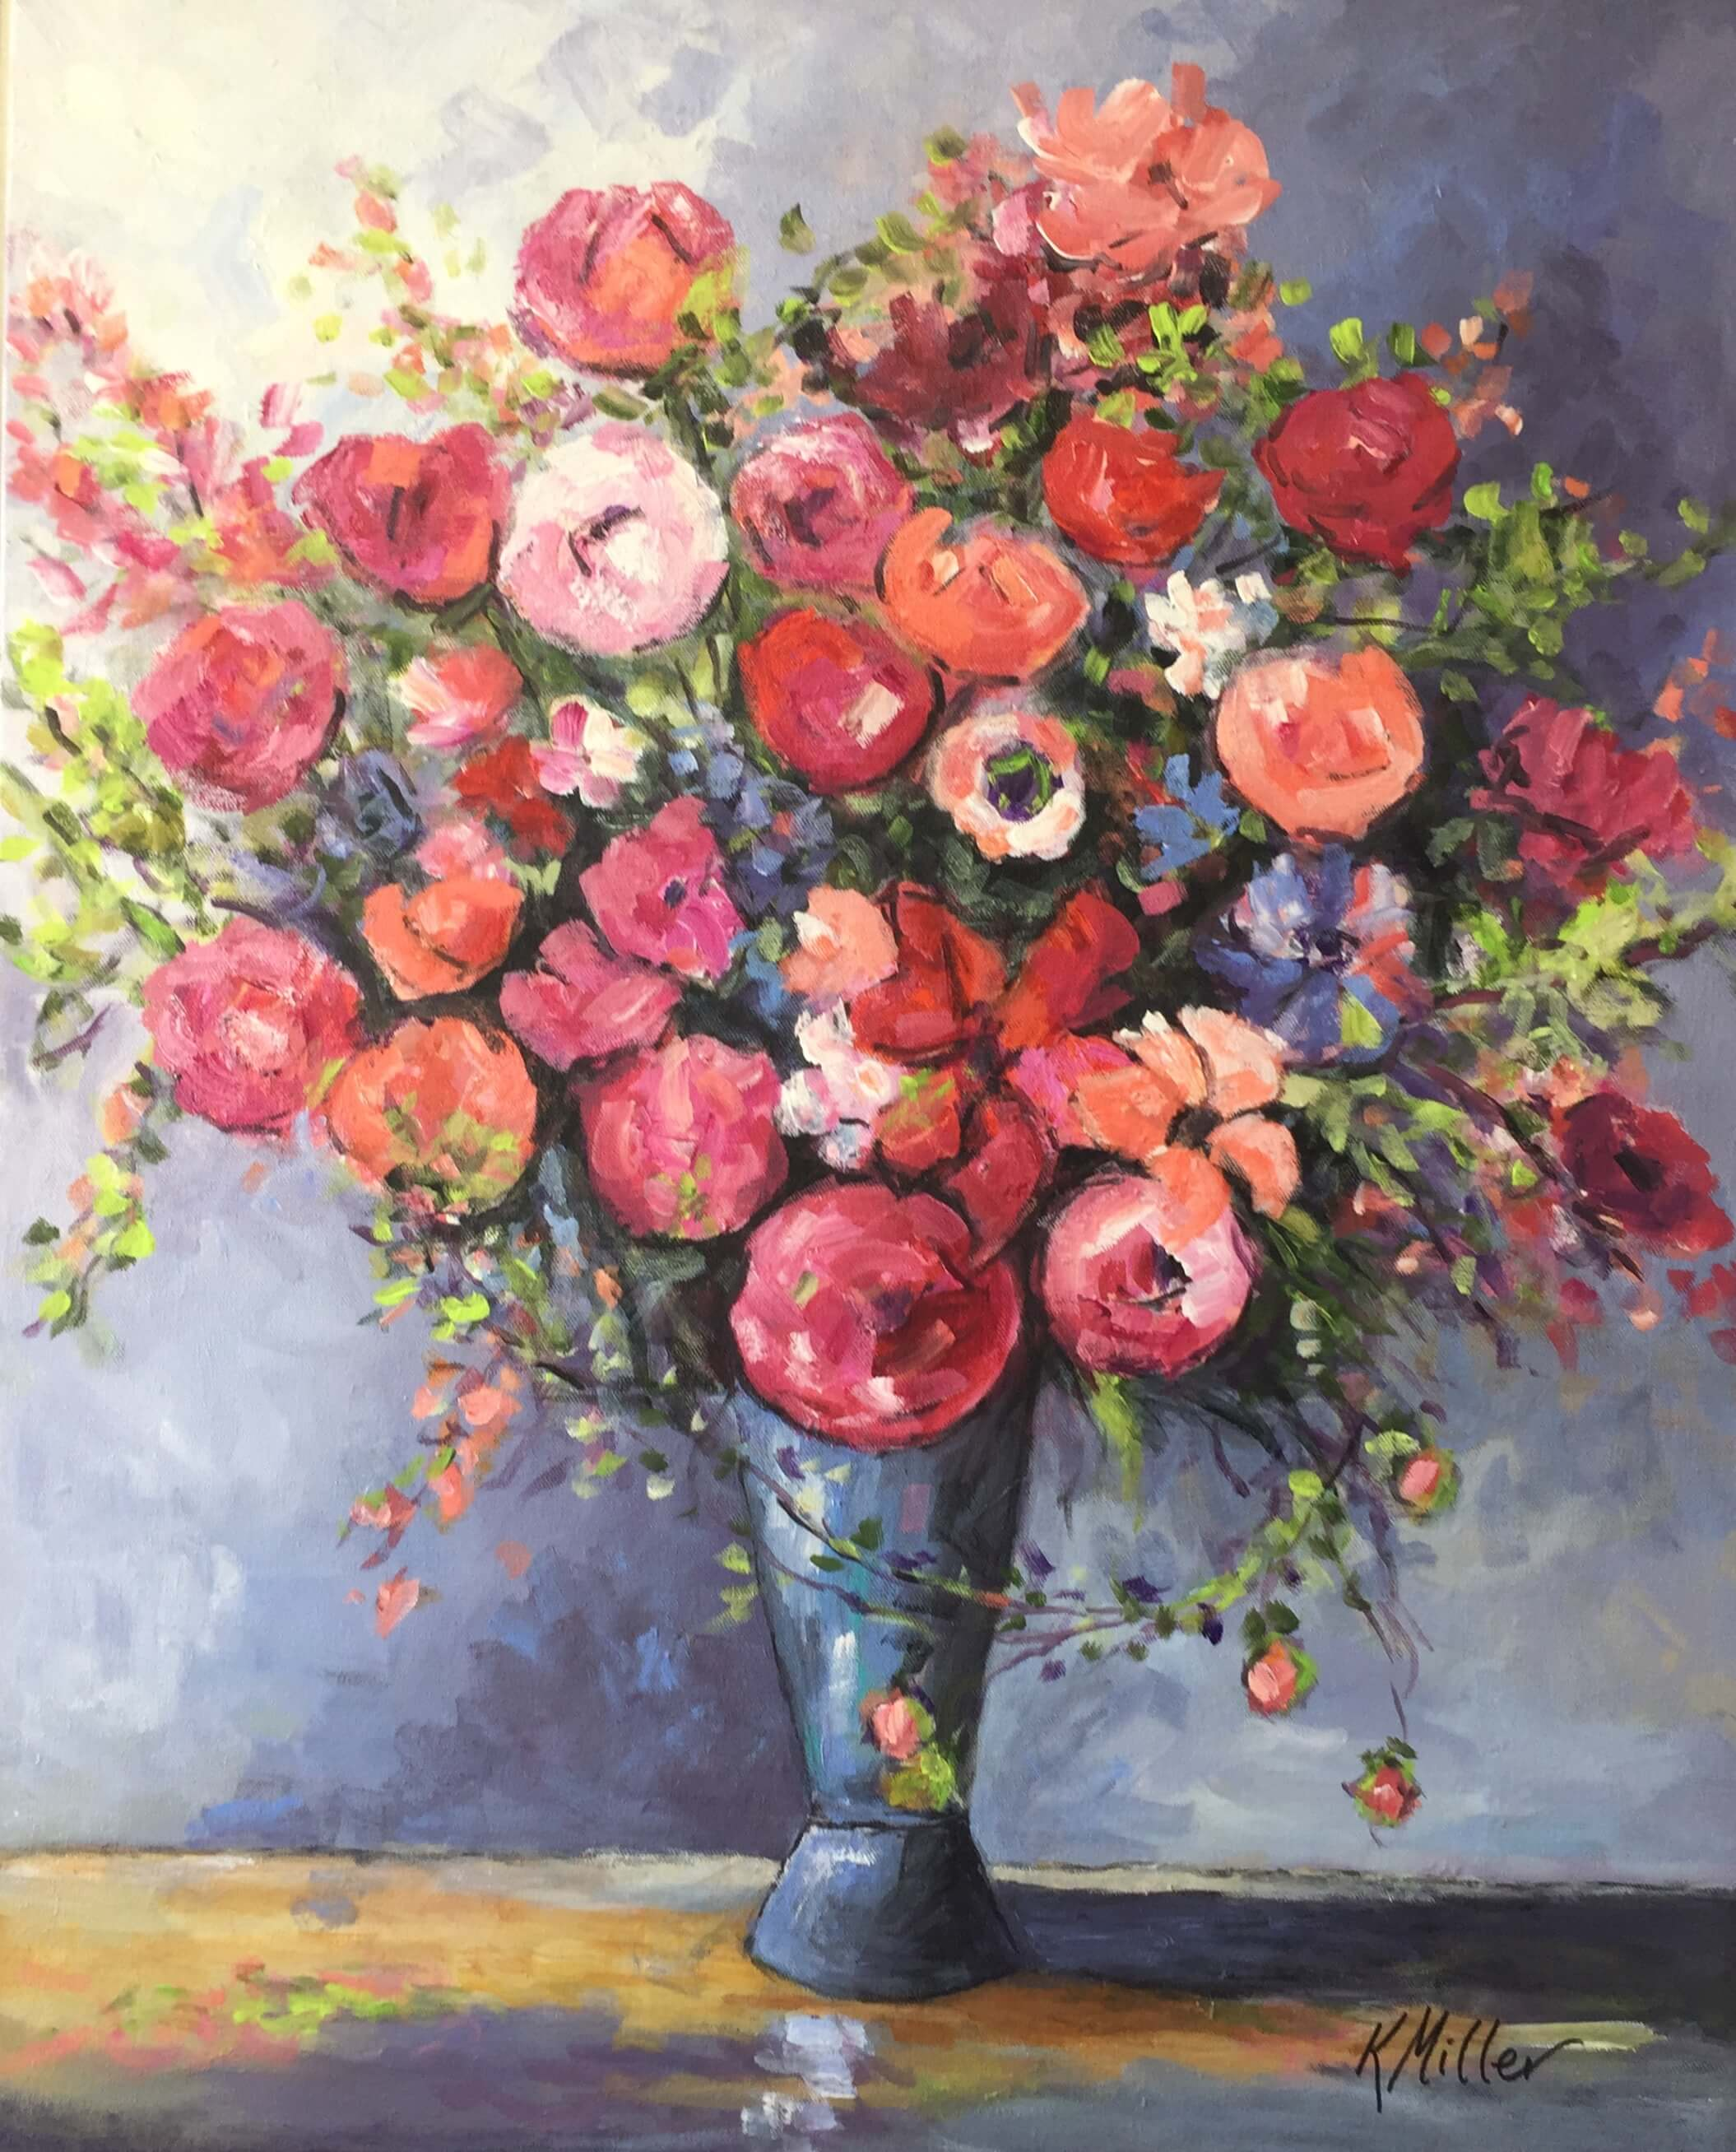 Free Spirited Flowers 24x30 Original Acrylic on Canvas by Kathy Miller